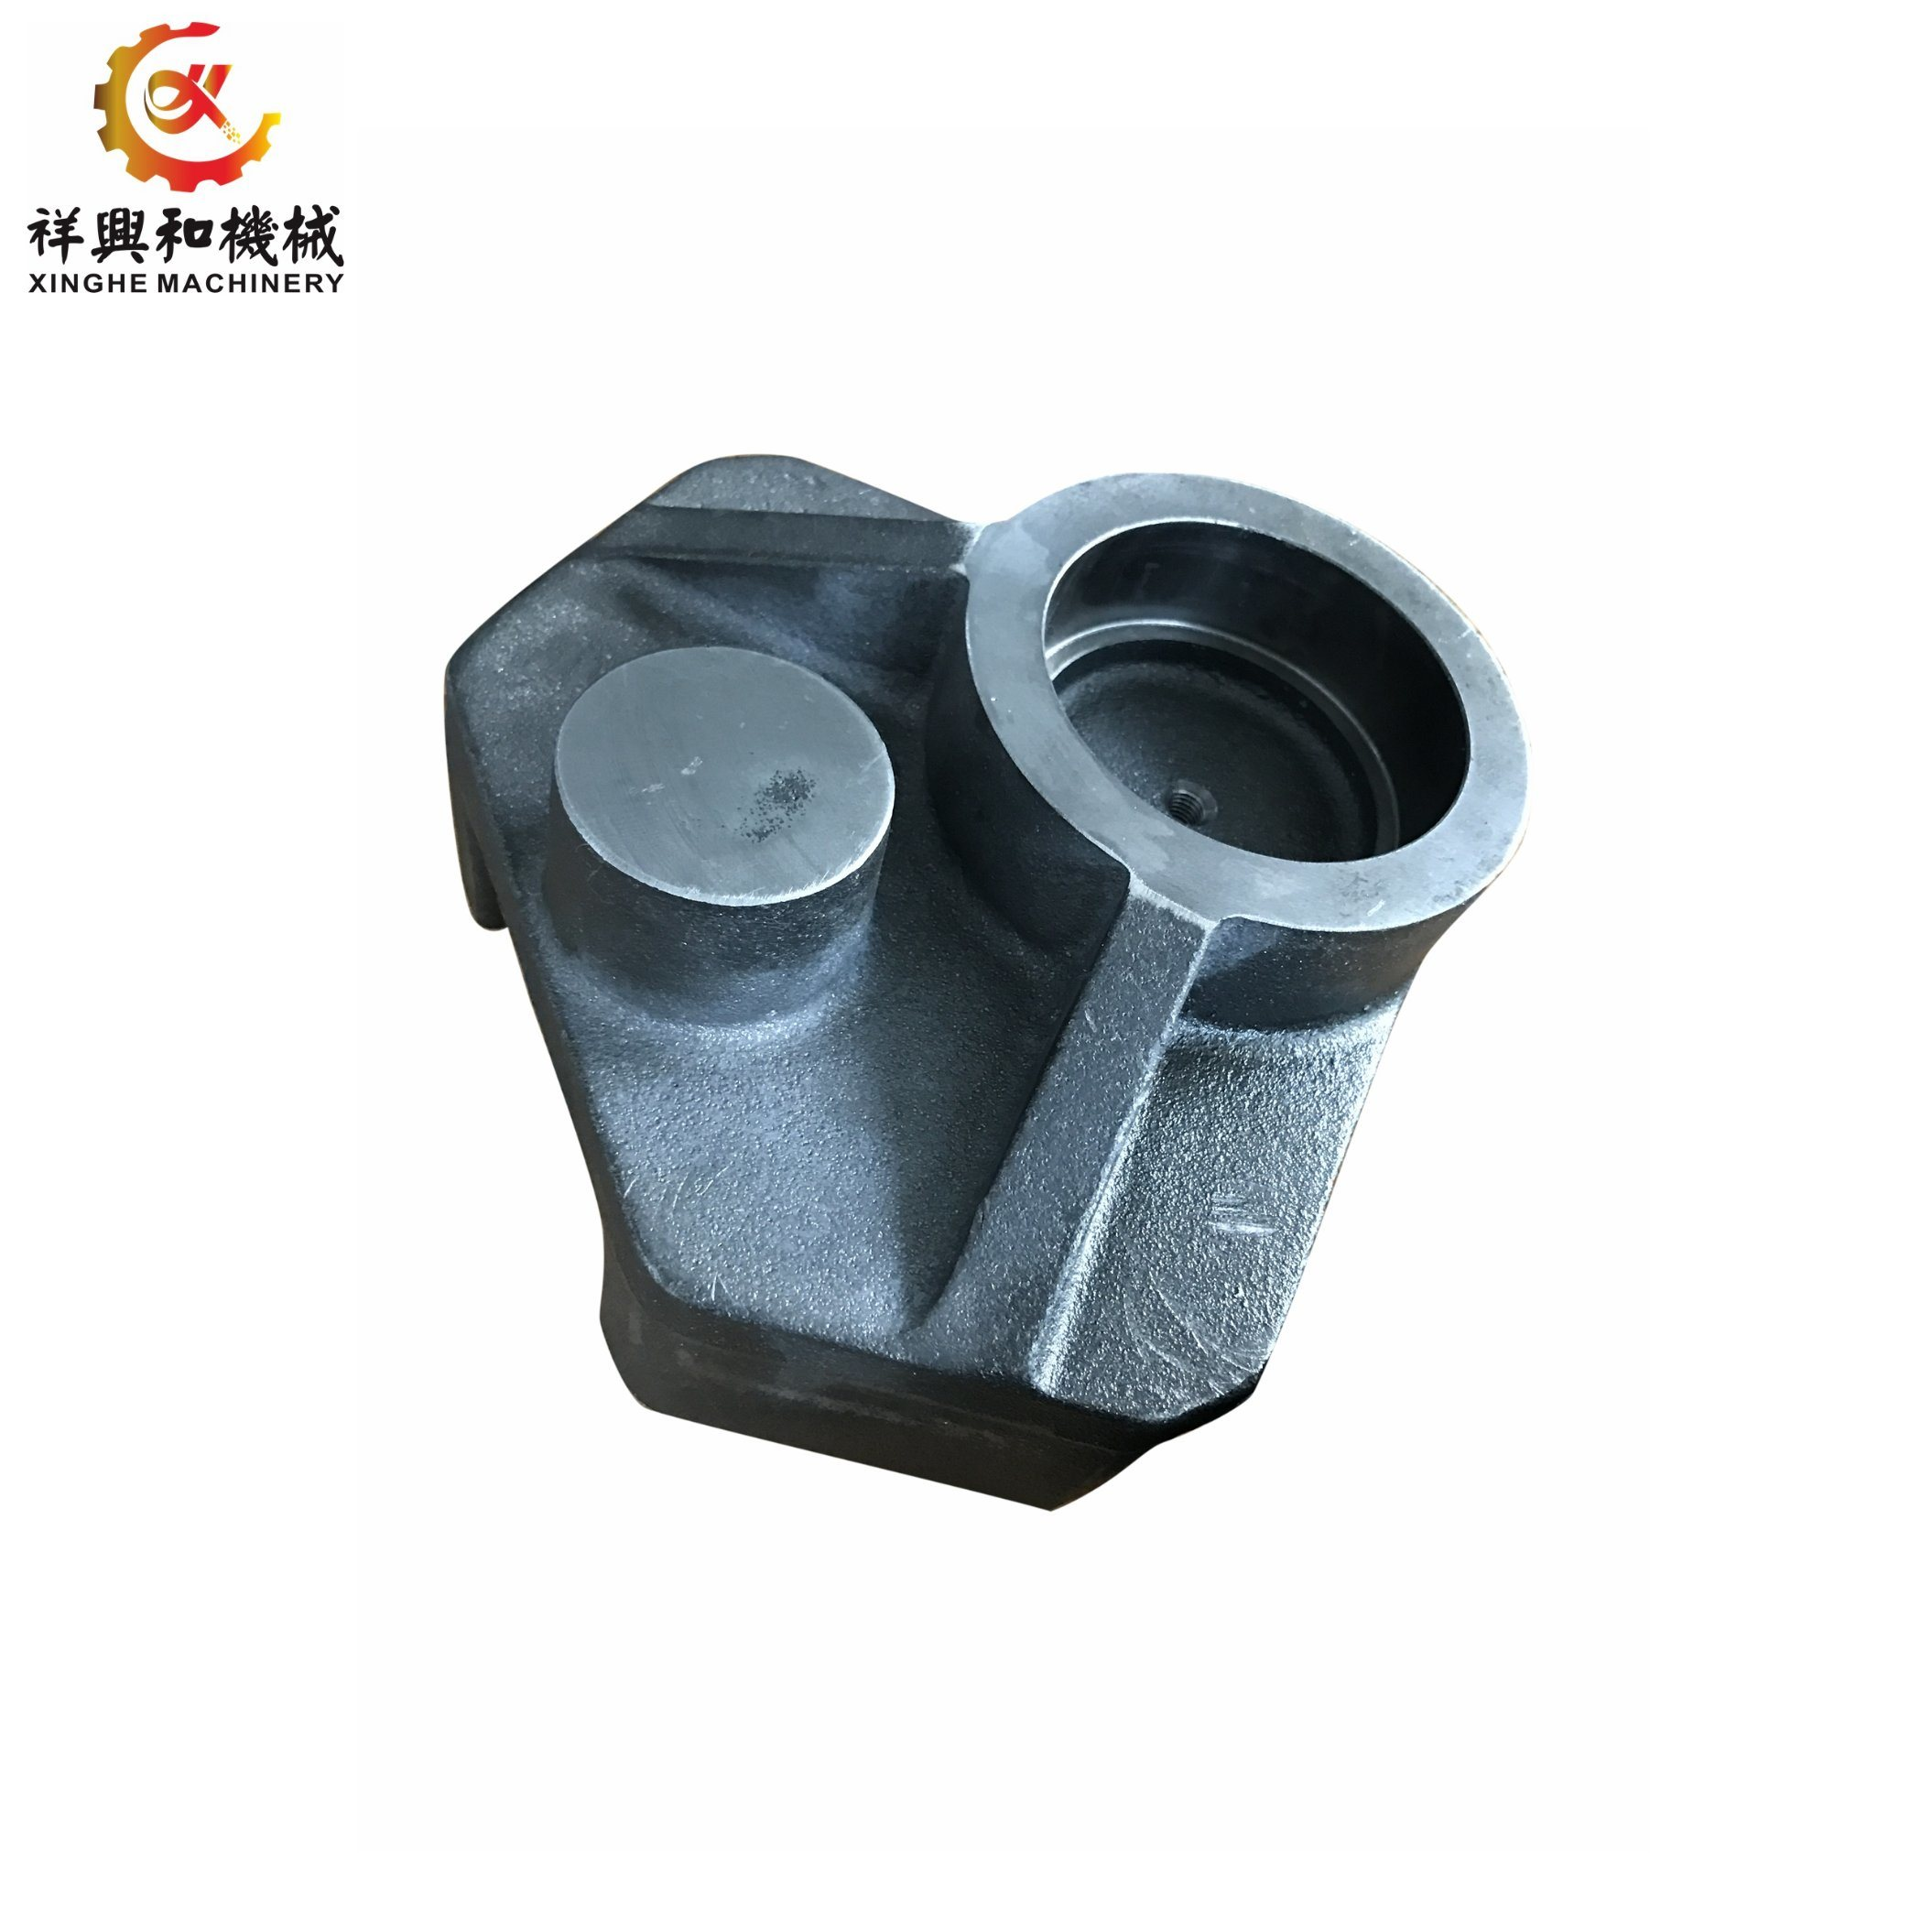 Custom Sand Casting Ductile Iron Fcd 450-550 with Black Powder Coat pictures & photos